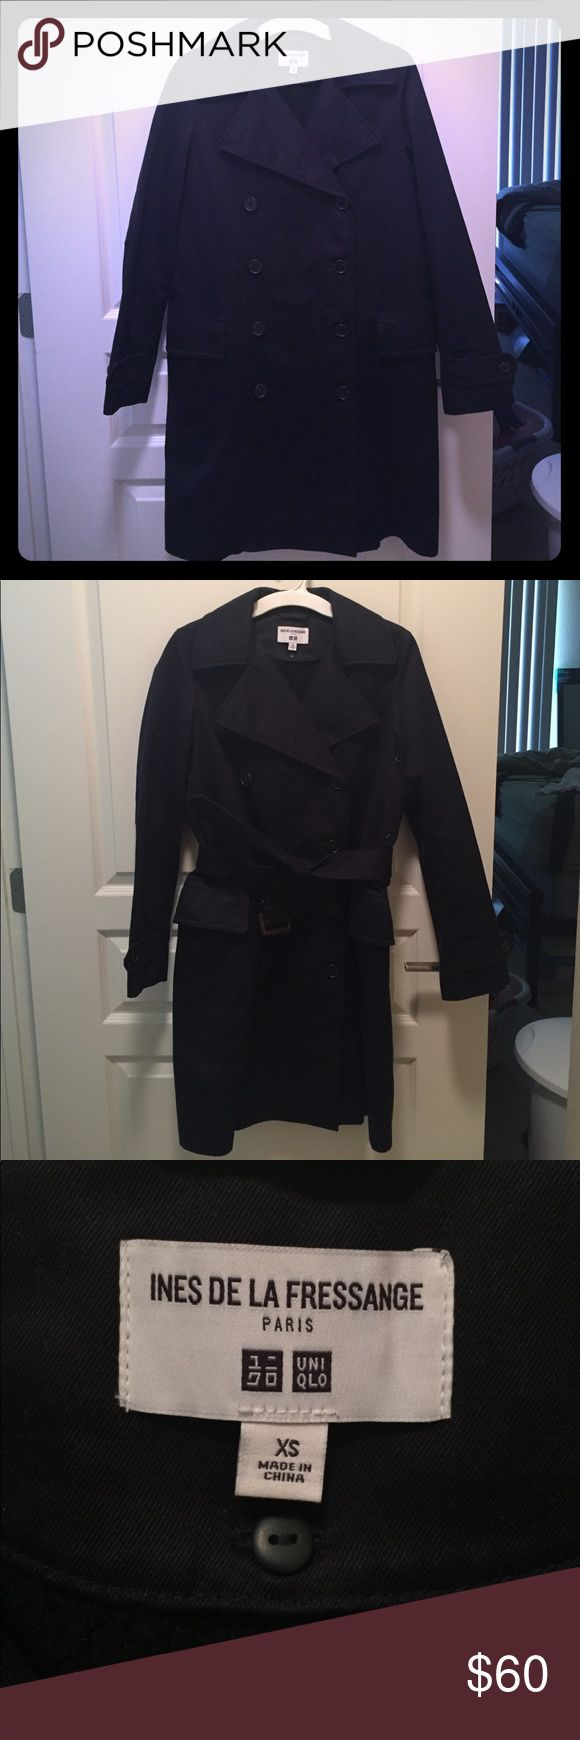 INES DE LA FRESSANGE X UNIQLO black trench coat XS Super cute and sophisticated black double breasted trench coat. Comes with belt. Back on the inside is lined with fleece and is removable. Does run a little large (IMO, can also fit S) especially without the belt so I recommend tying the belt around your waist! In excellent used condition, only worn a few times. Uniqlo Jackets & Coats Trench Coats